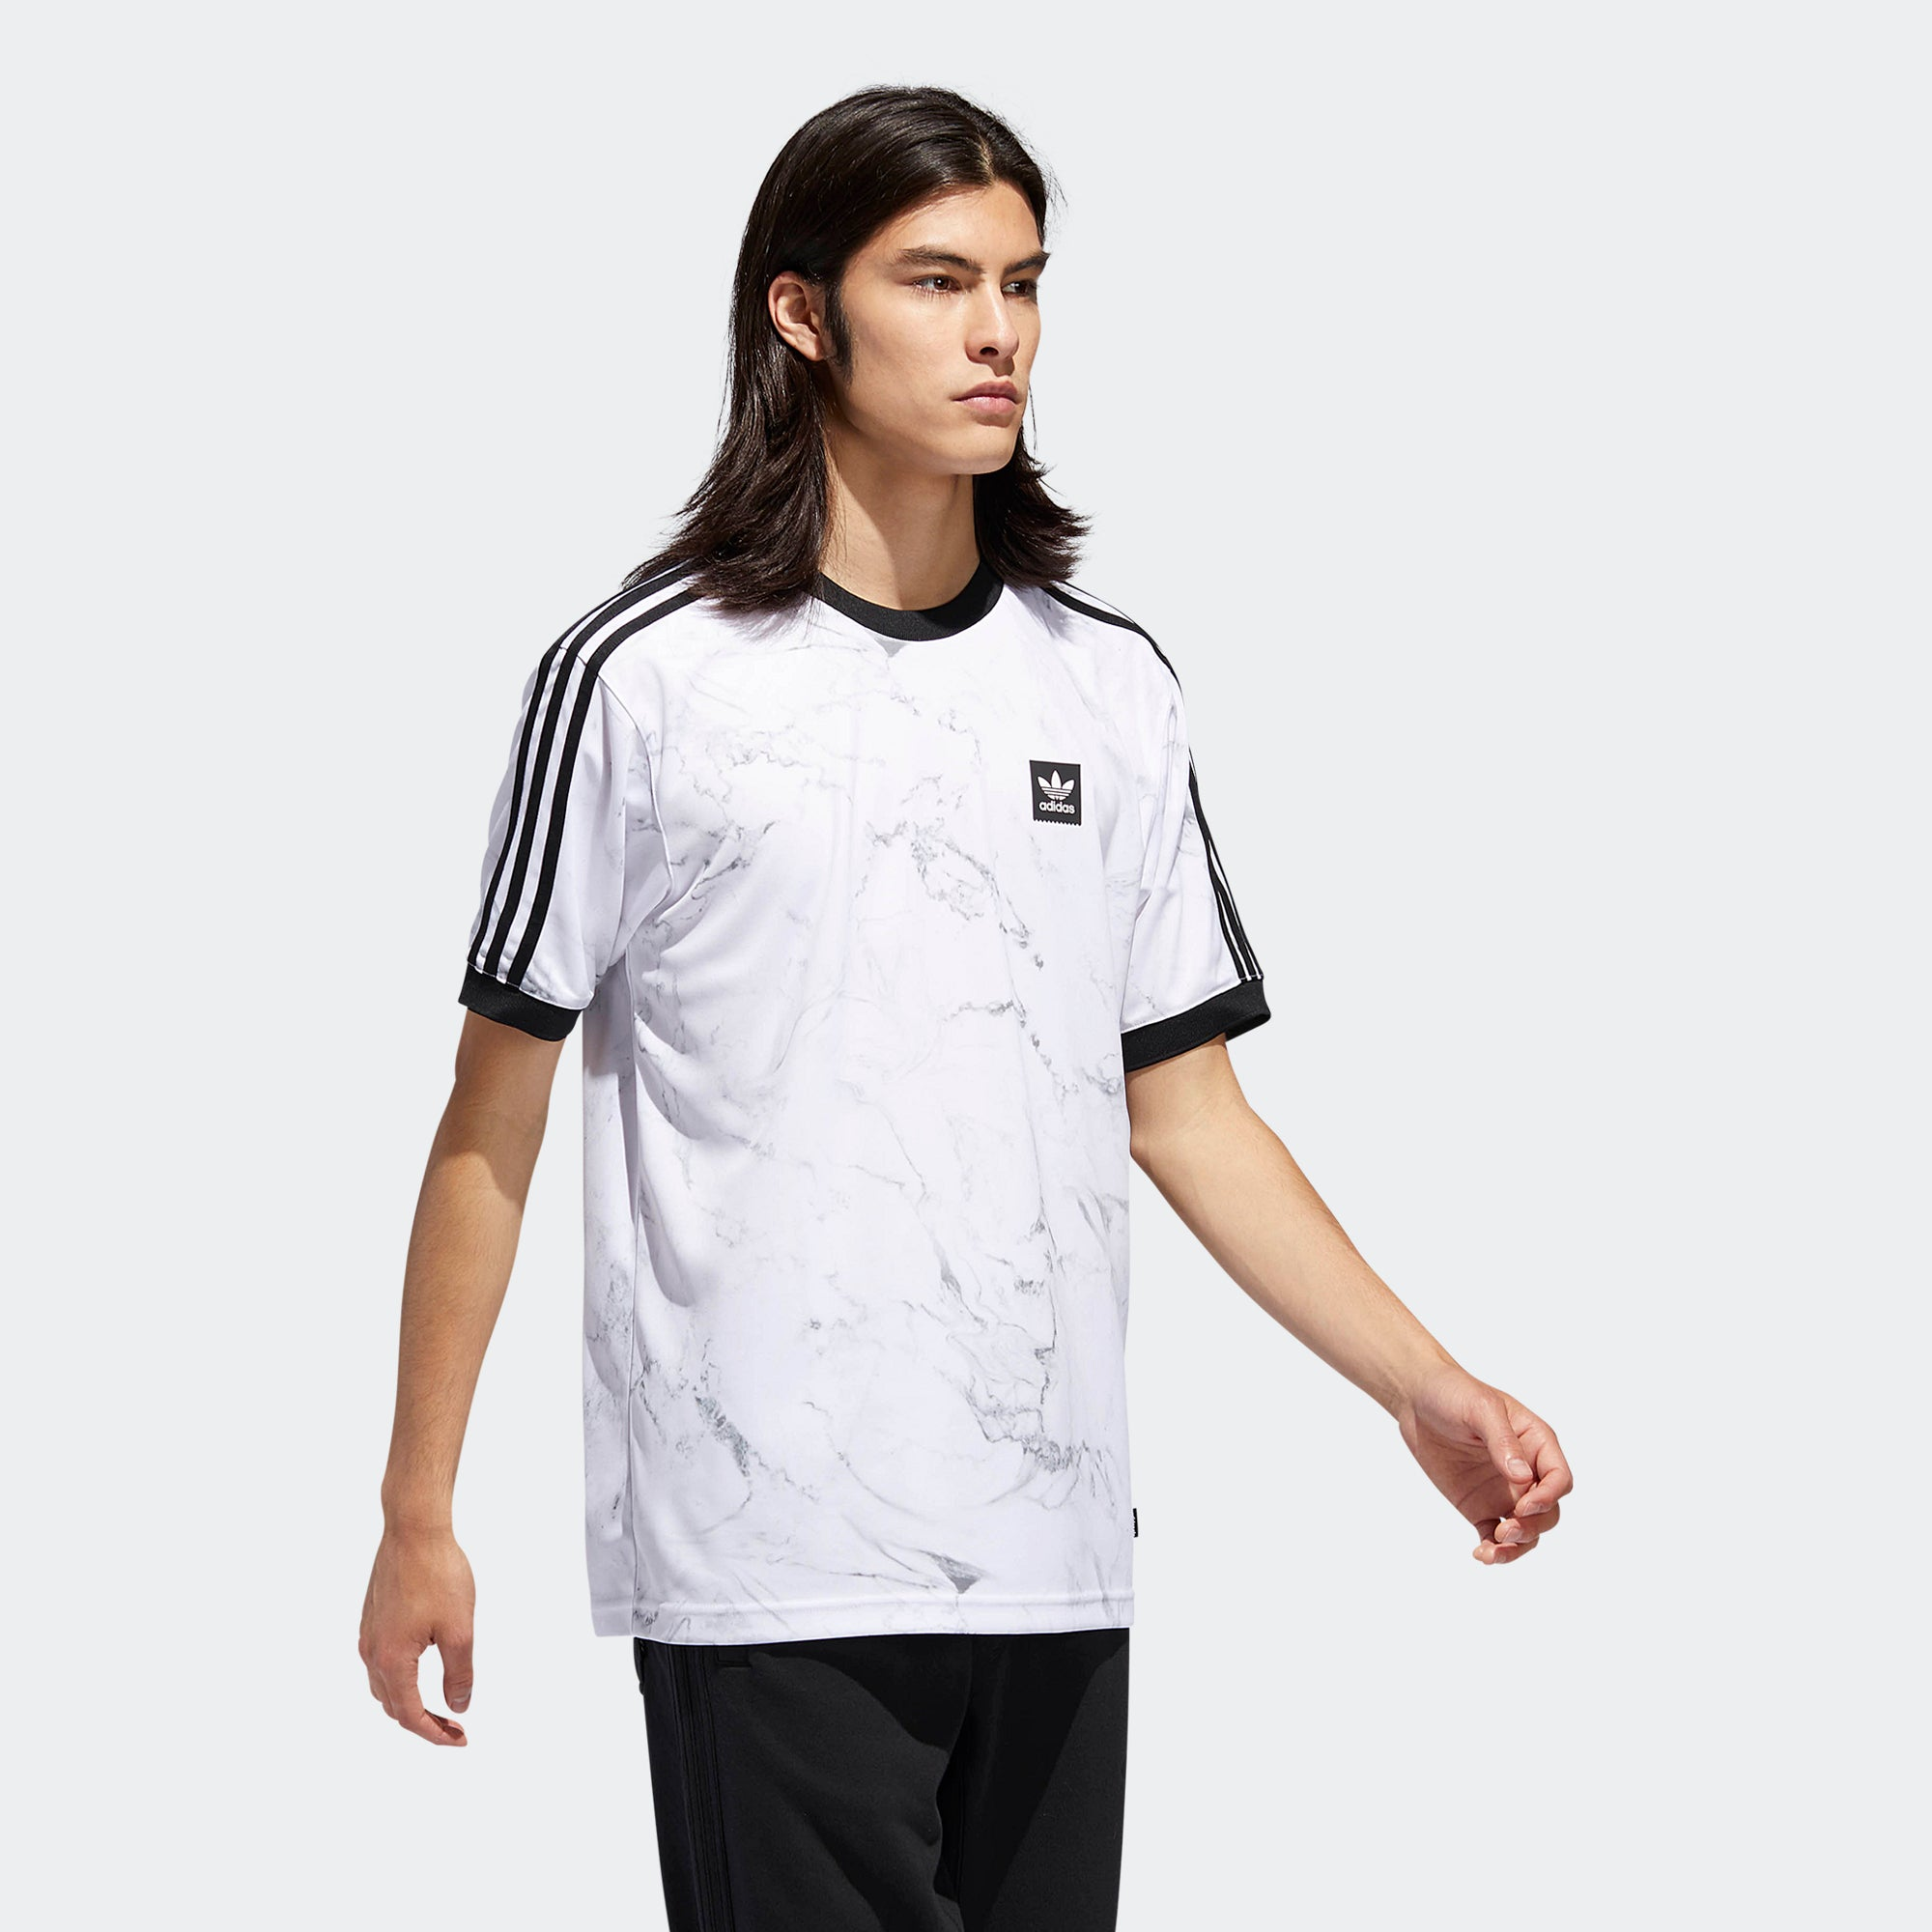 adidas Marble Clima Club Jersey White DH3889 | Chicago City